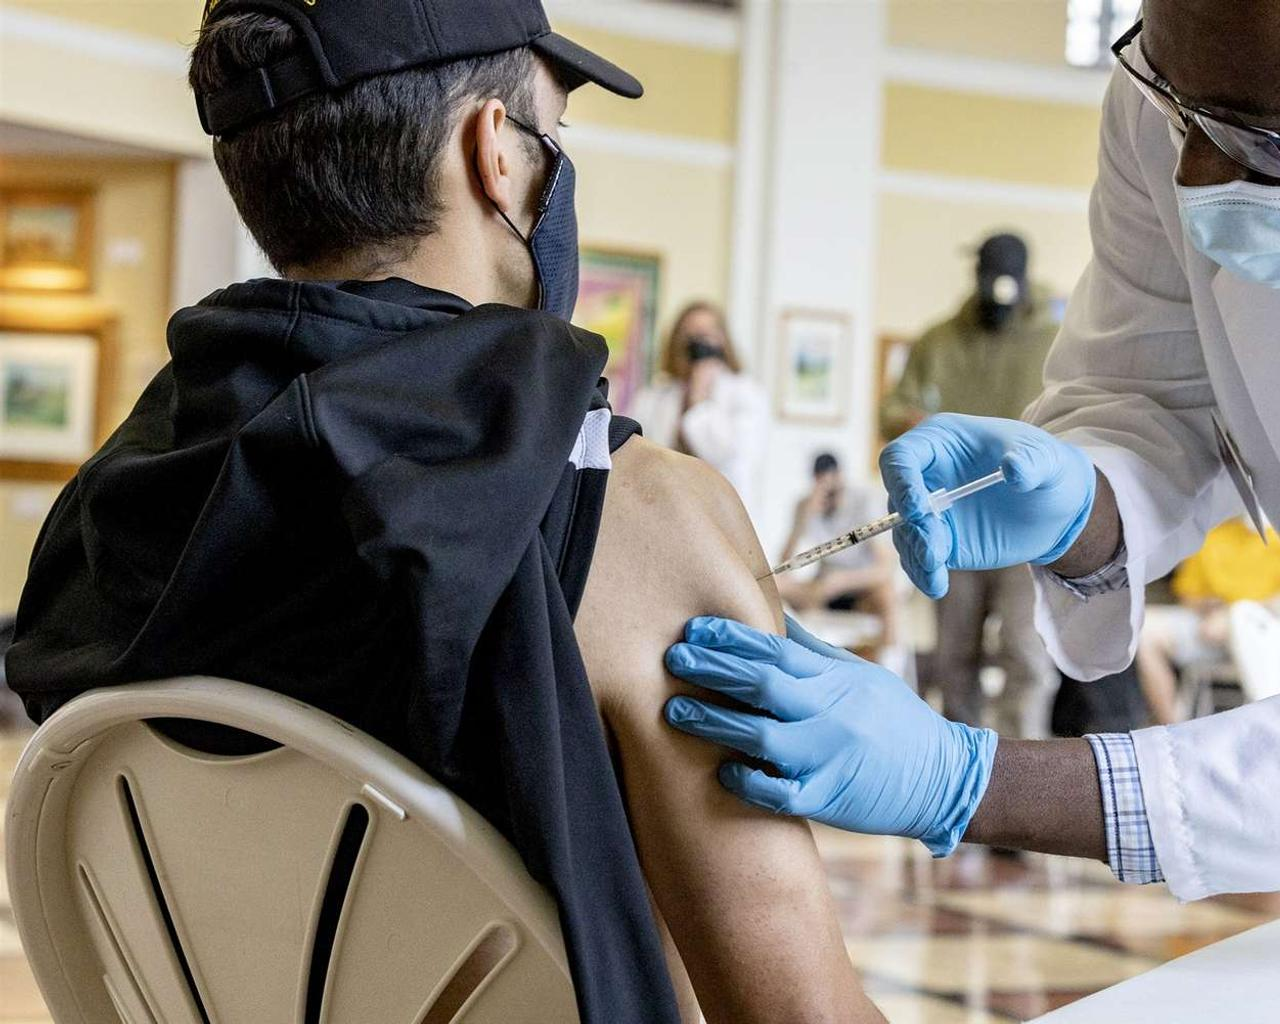 States see rise in unused vaccines as demand flattens, shifting focus to hesitancy